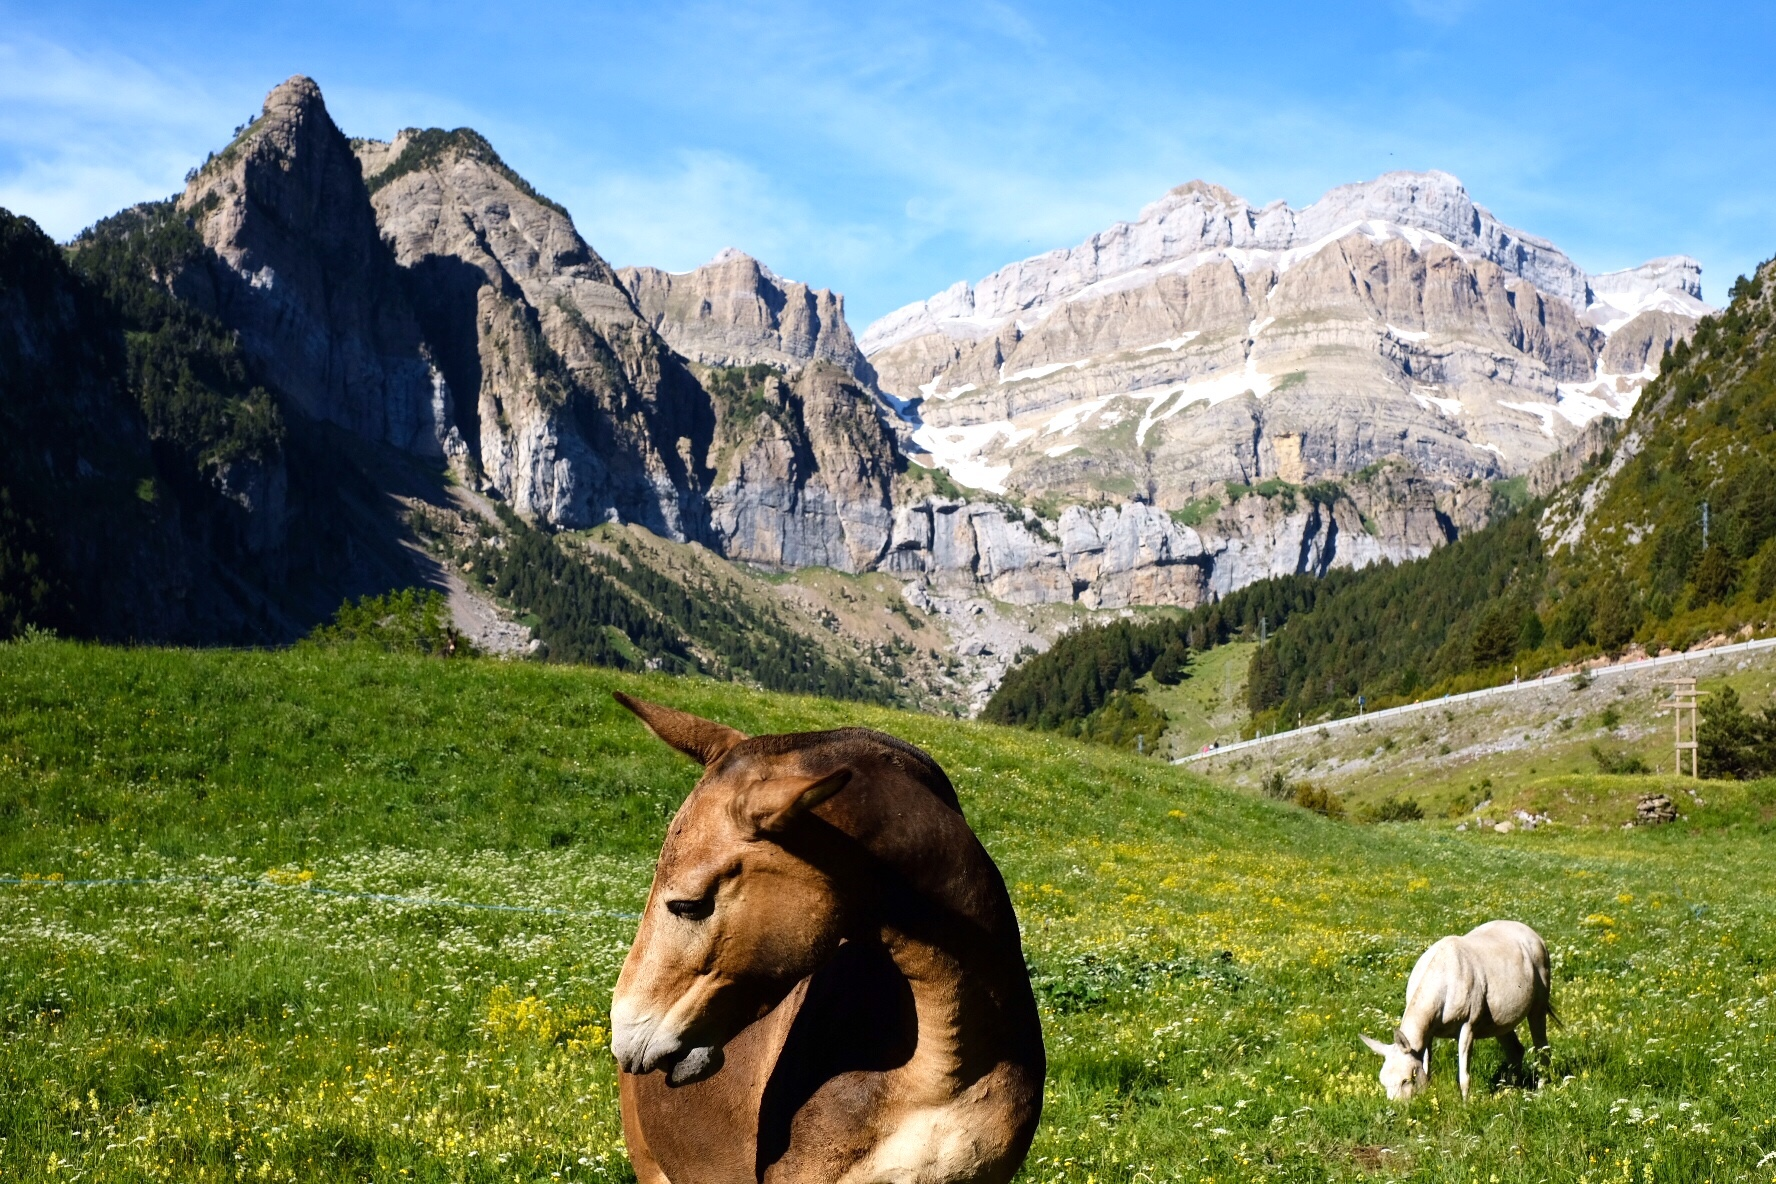 A mule in the Pyrenees, Camino Aragones